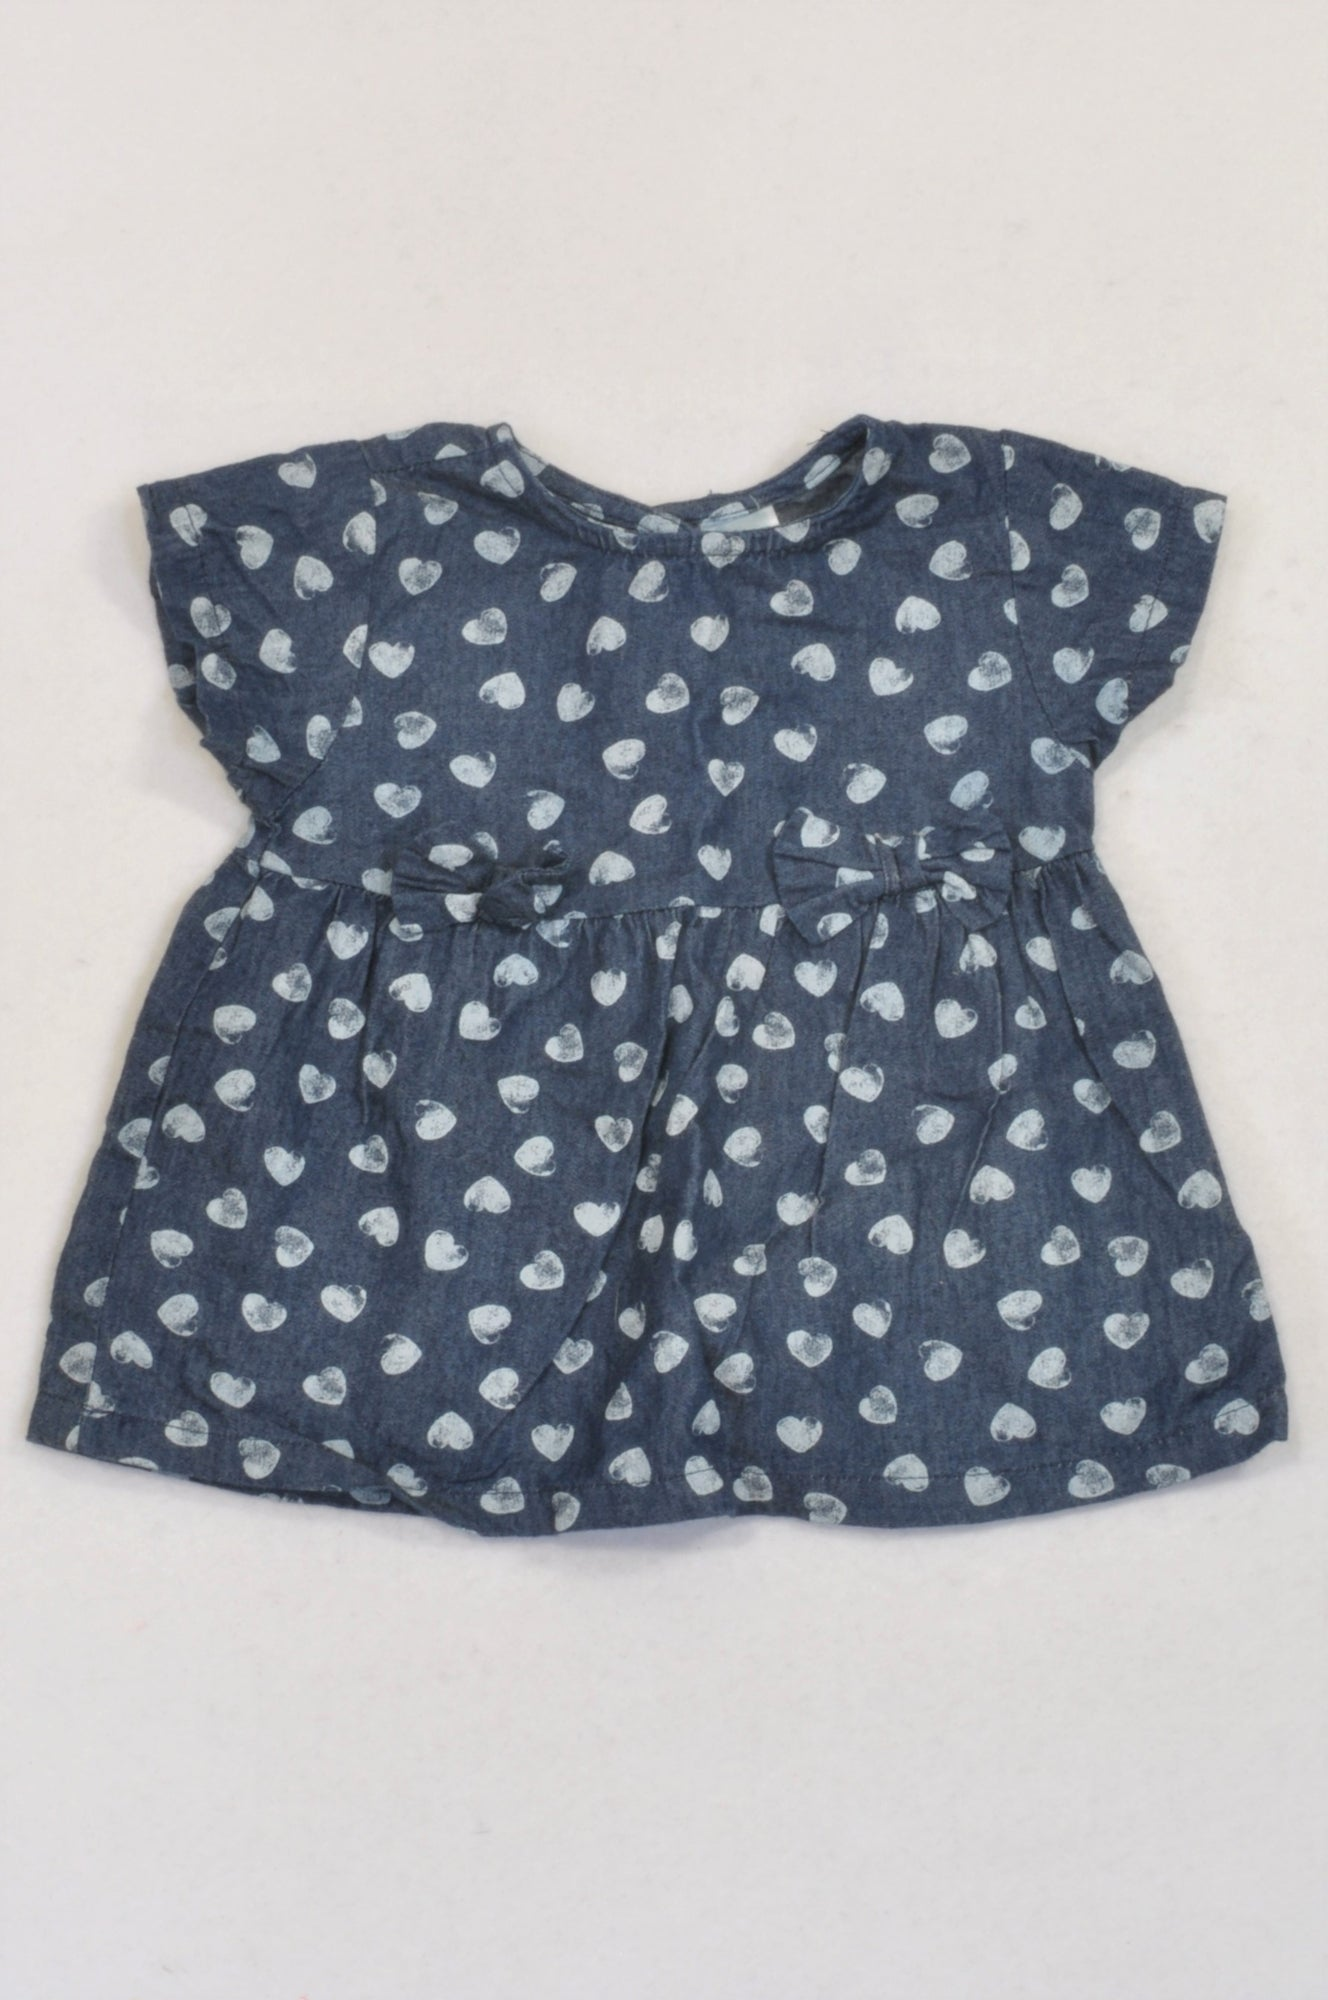 483c9a0209ea Ackermans Denim Heart Bow Dress Girls 3-6 months – Once More